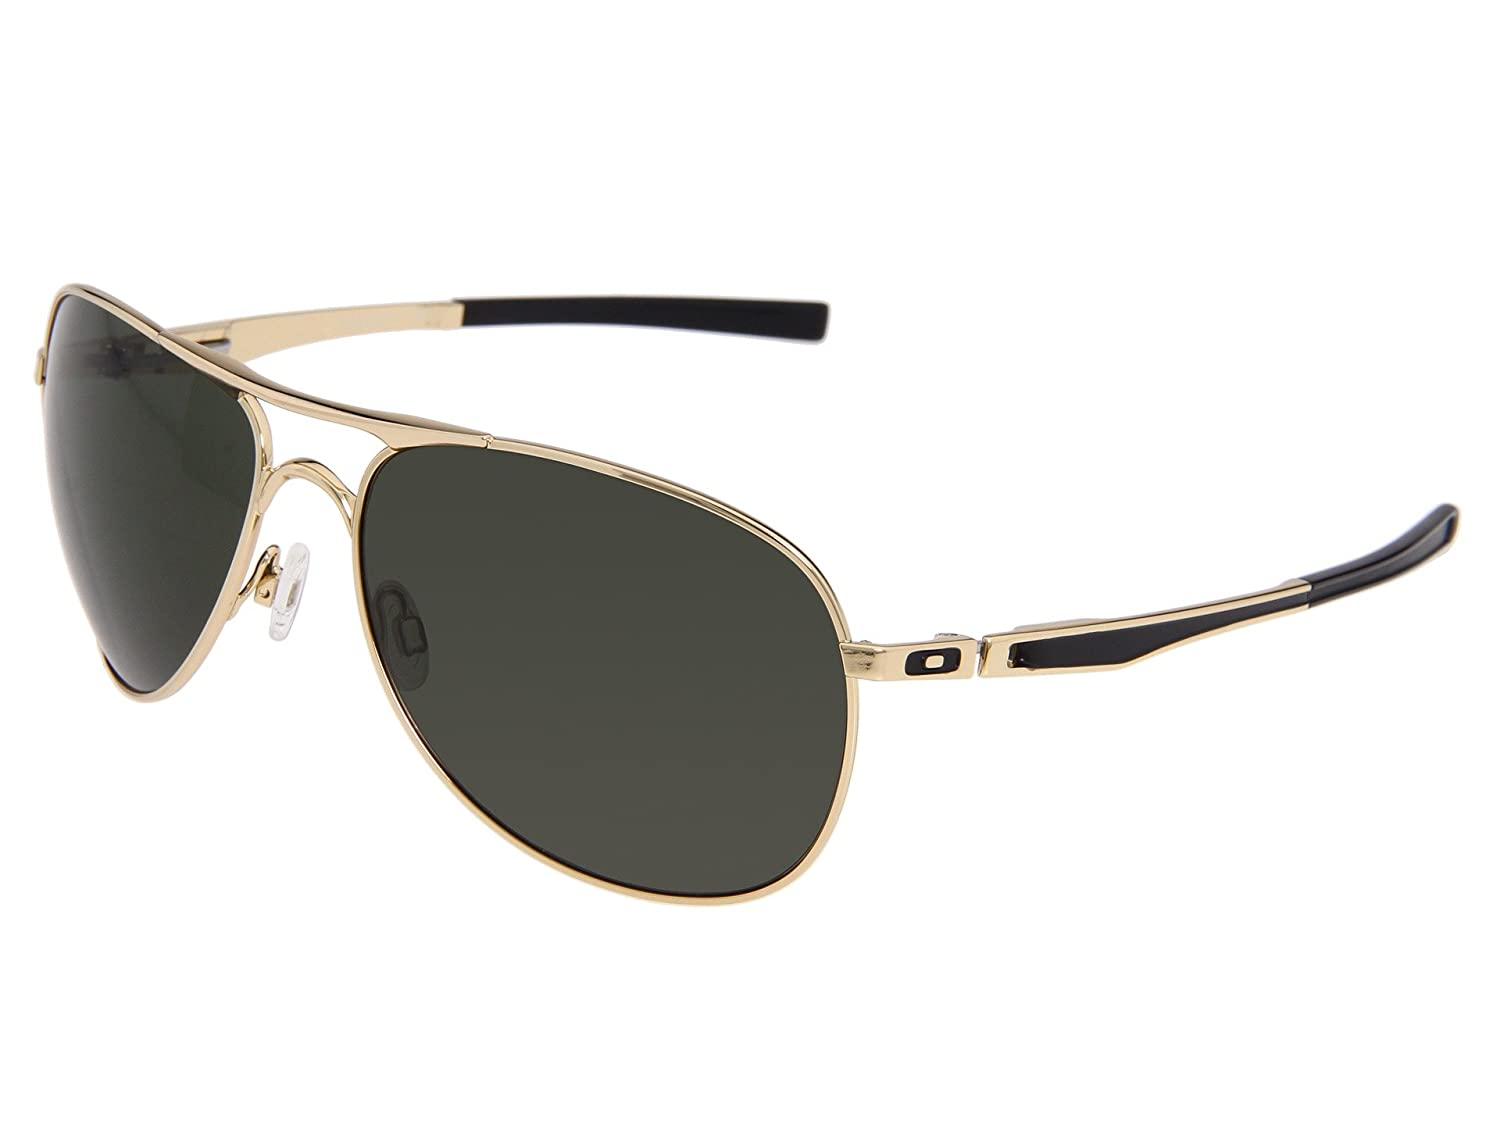 99c976bc70 Amazon.com: Oakley Plaintiff Sunglasses - Yuvraj Singh - Polished Gold  Frame / Grey Lens: Clothing